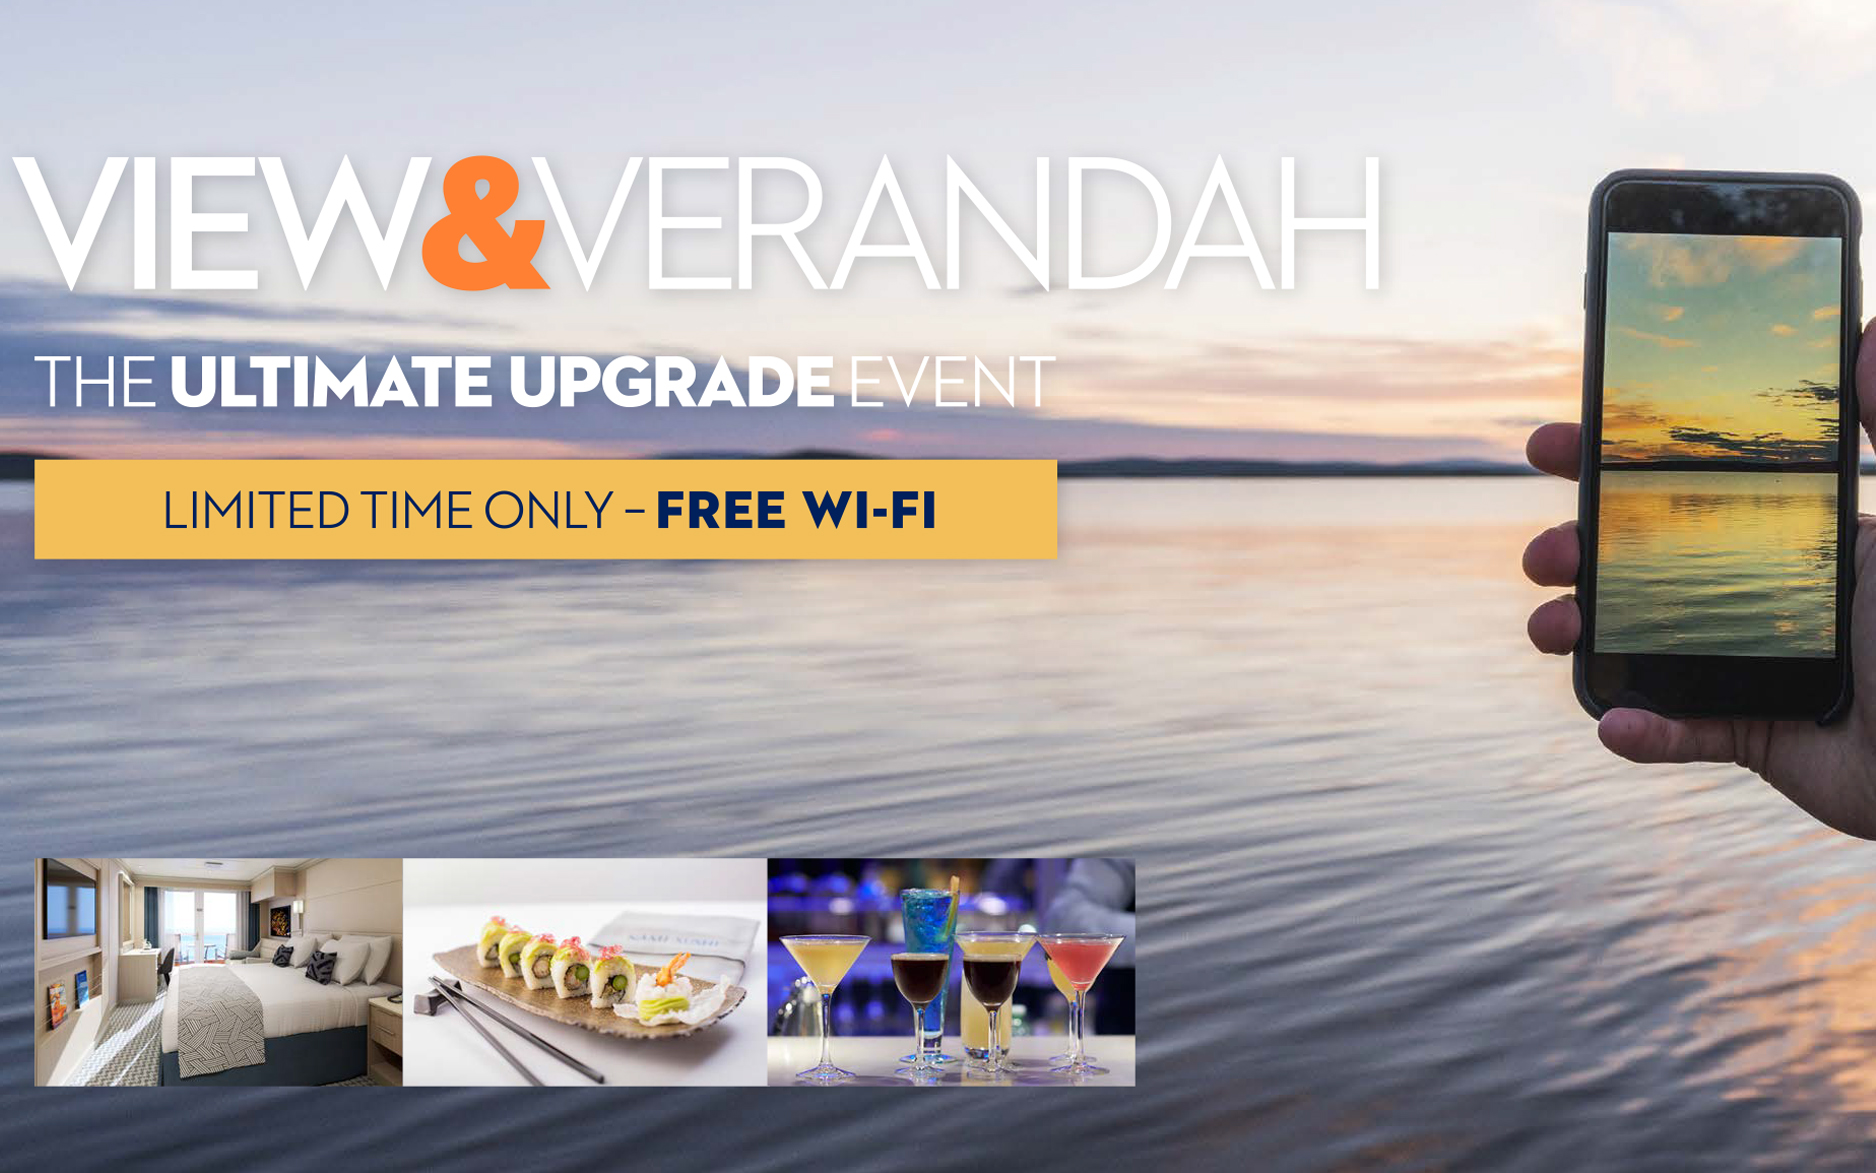 Holland America - Big Stateroom Upgrades, Drink Package & FREE WIFI!